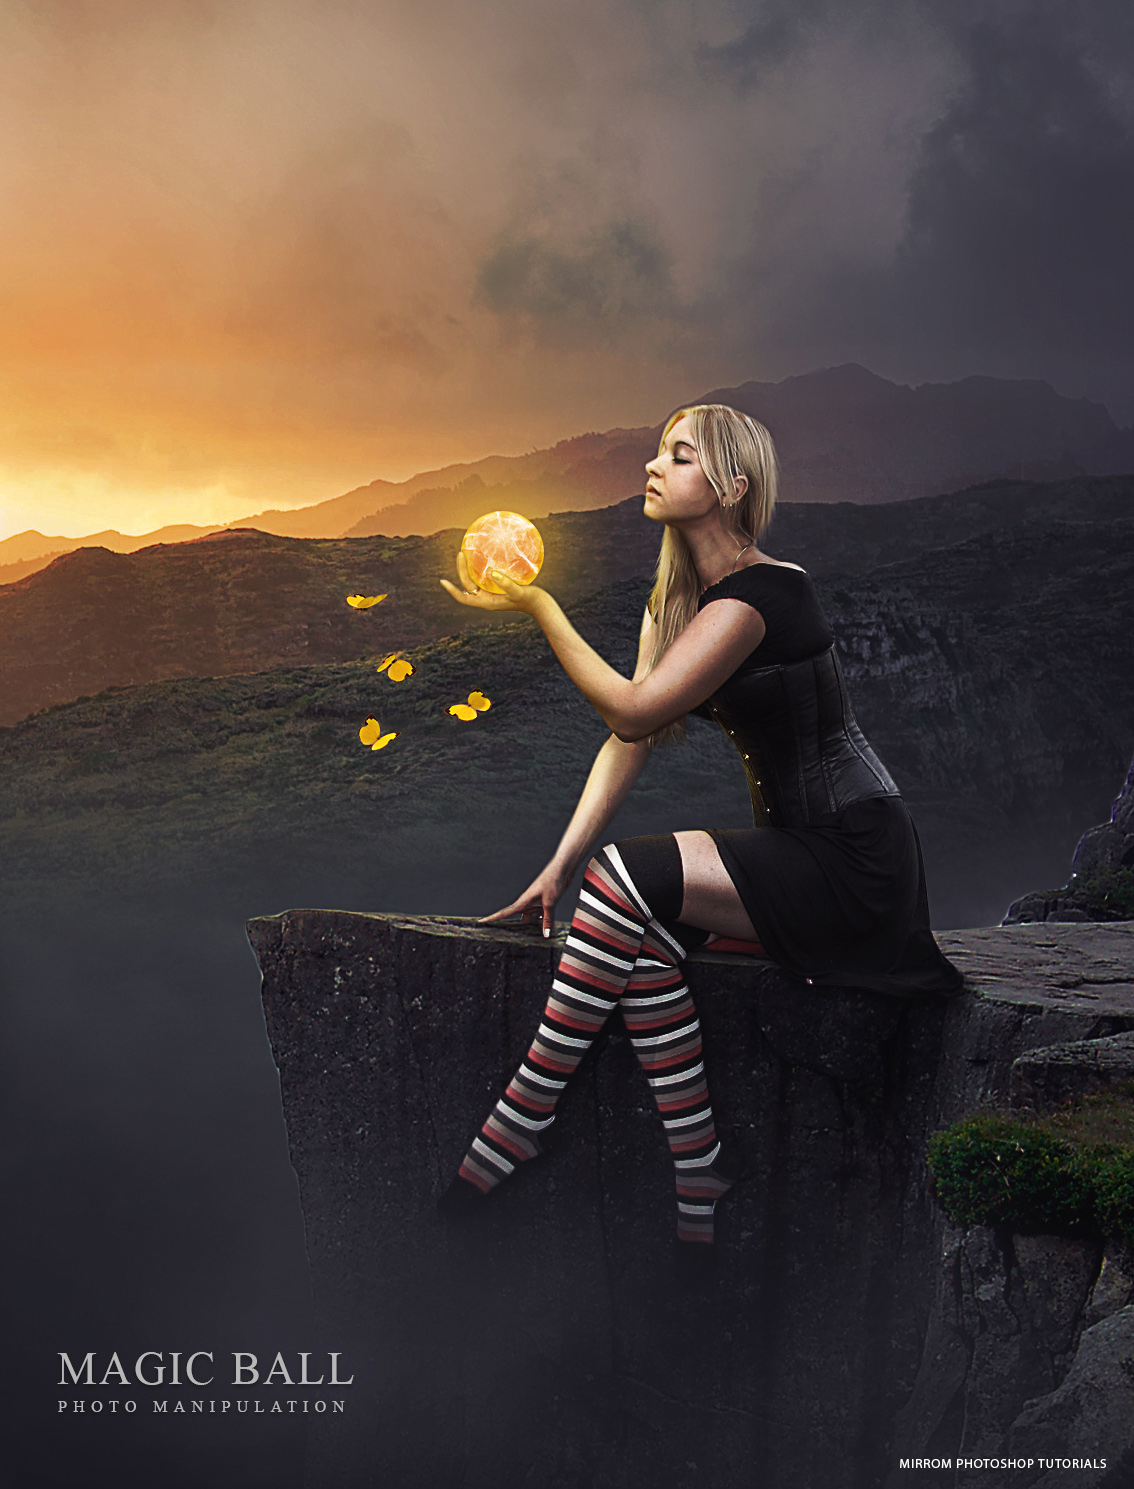 Create an Magic Ball Photo Manipulation In Photoshop